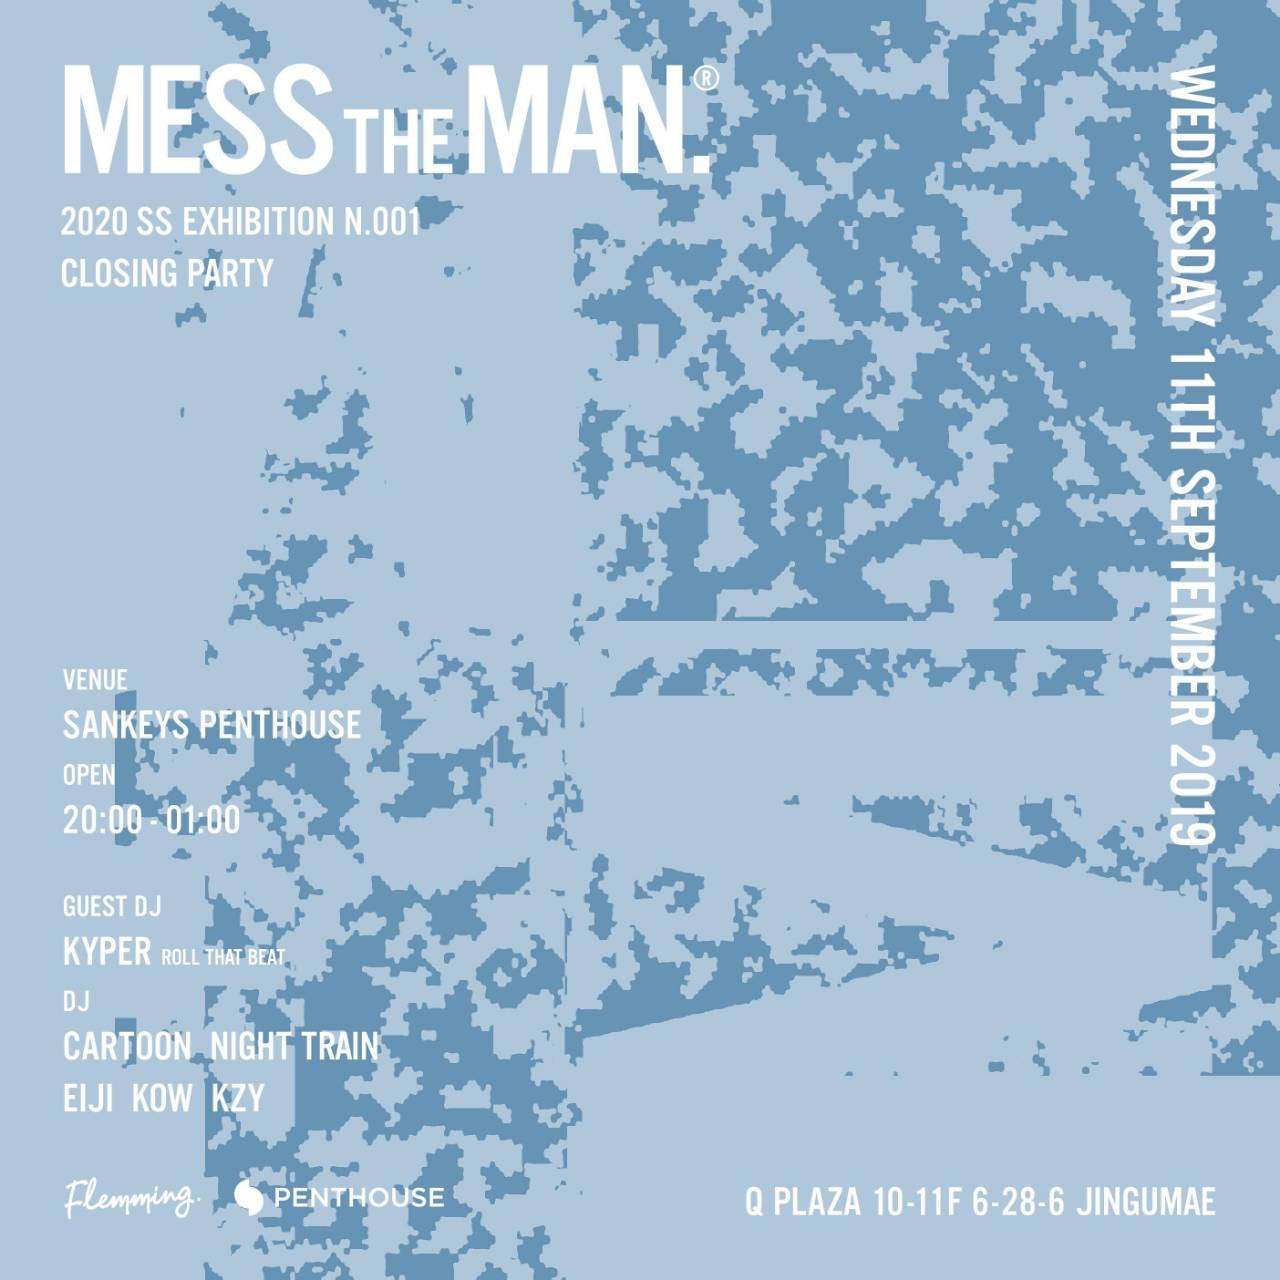 MESS THE MAN.  2020 SS EXHIBITION N.001 CLOSING PARTY